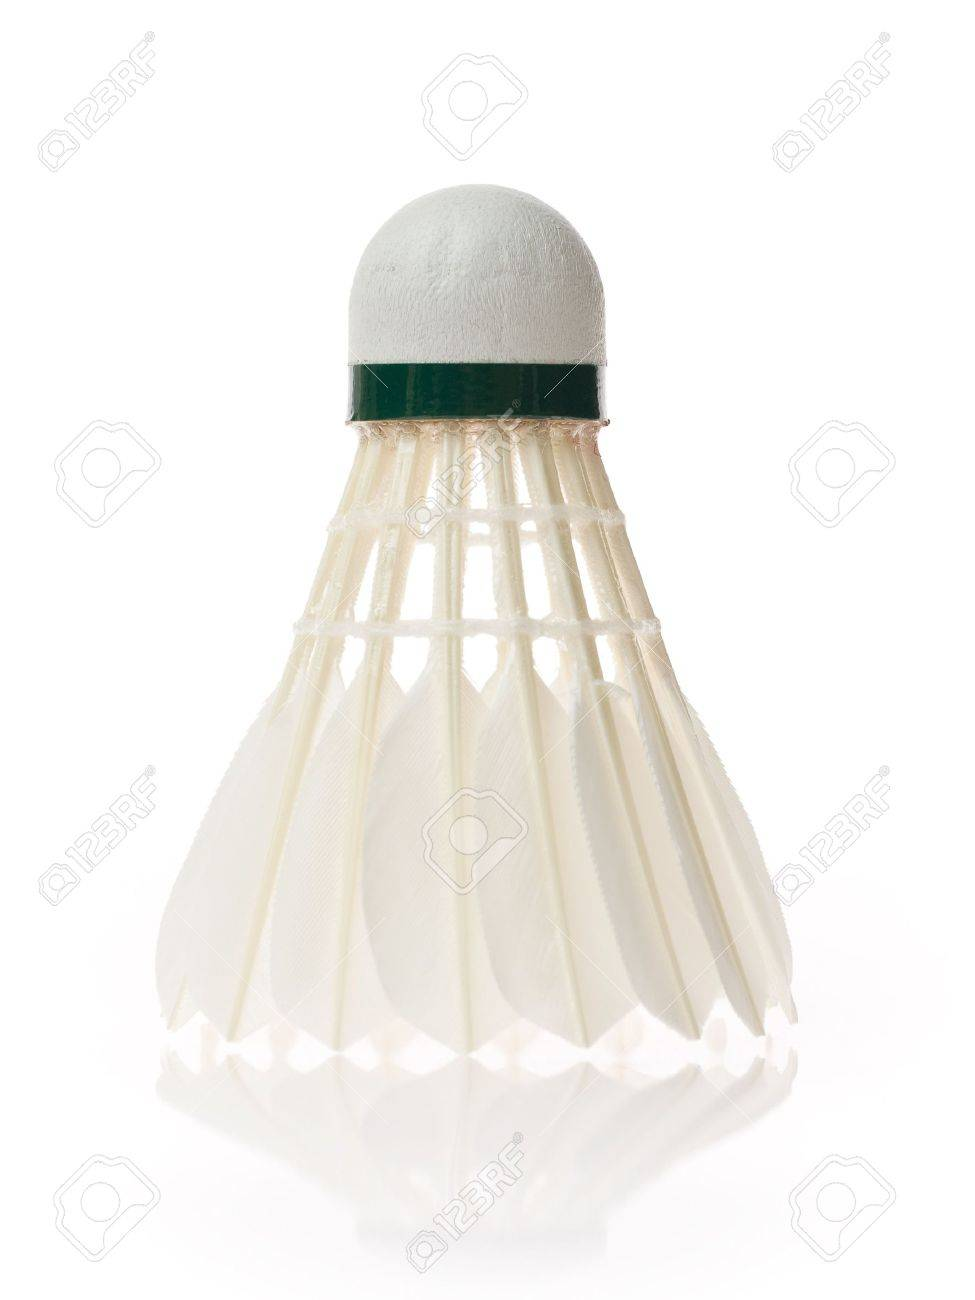 One shuttlecock isolated on the white background Stock Photo - 6918434